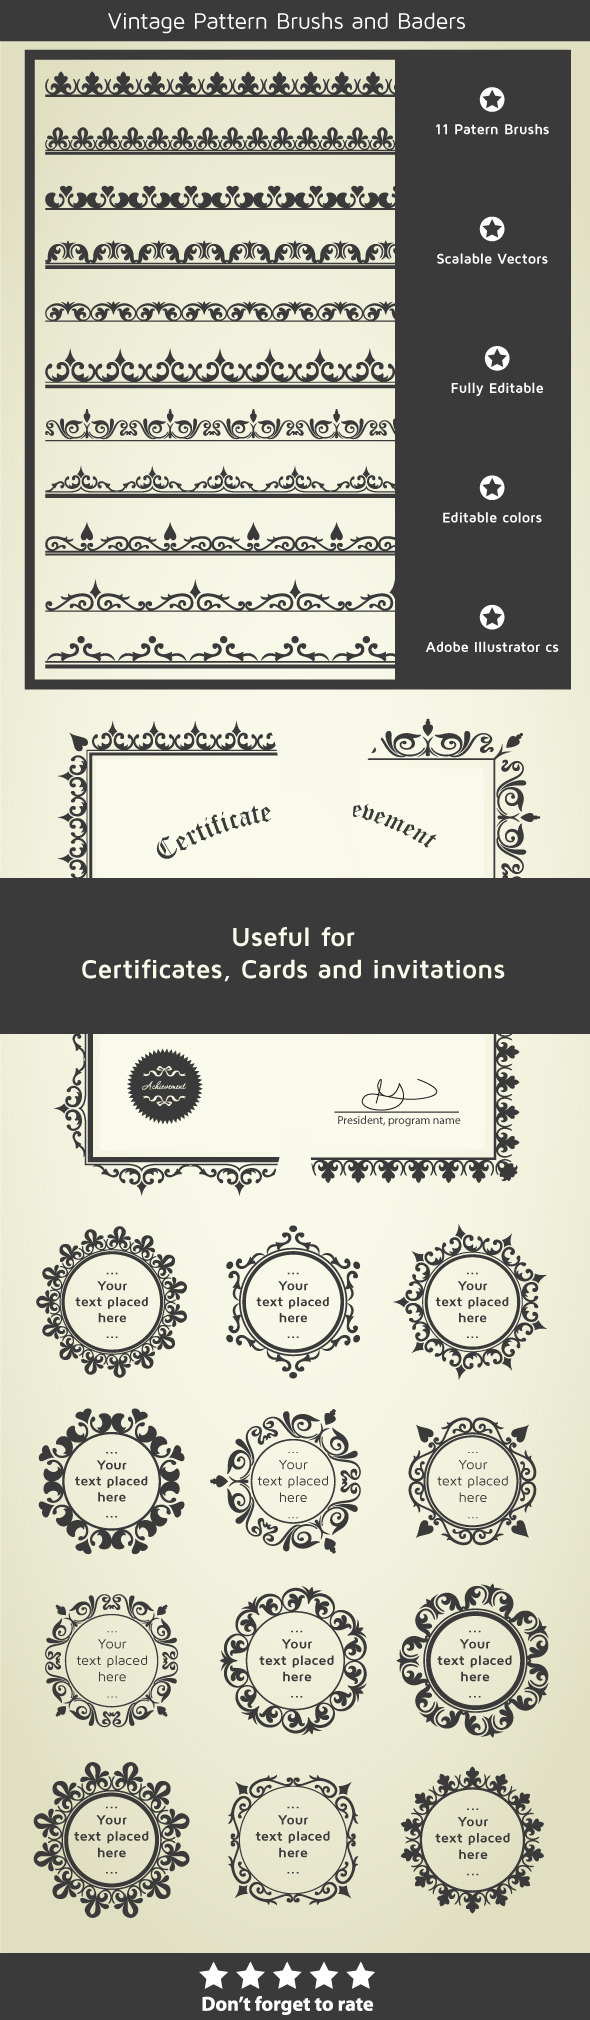 Borders for Certificates, Invitations and Cards - Miscellaneous Brushes